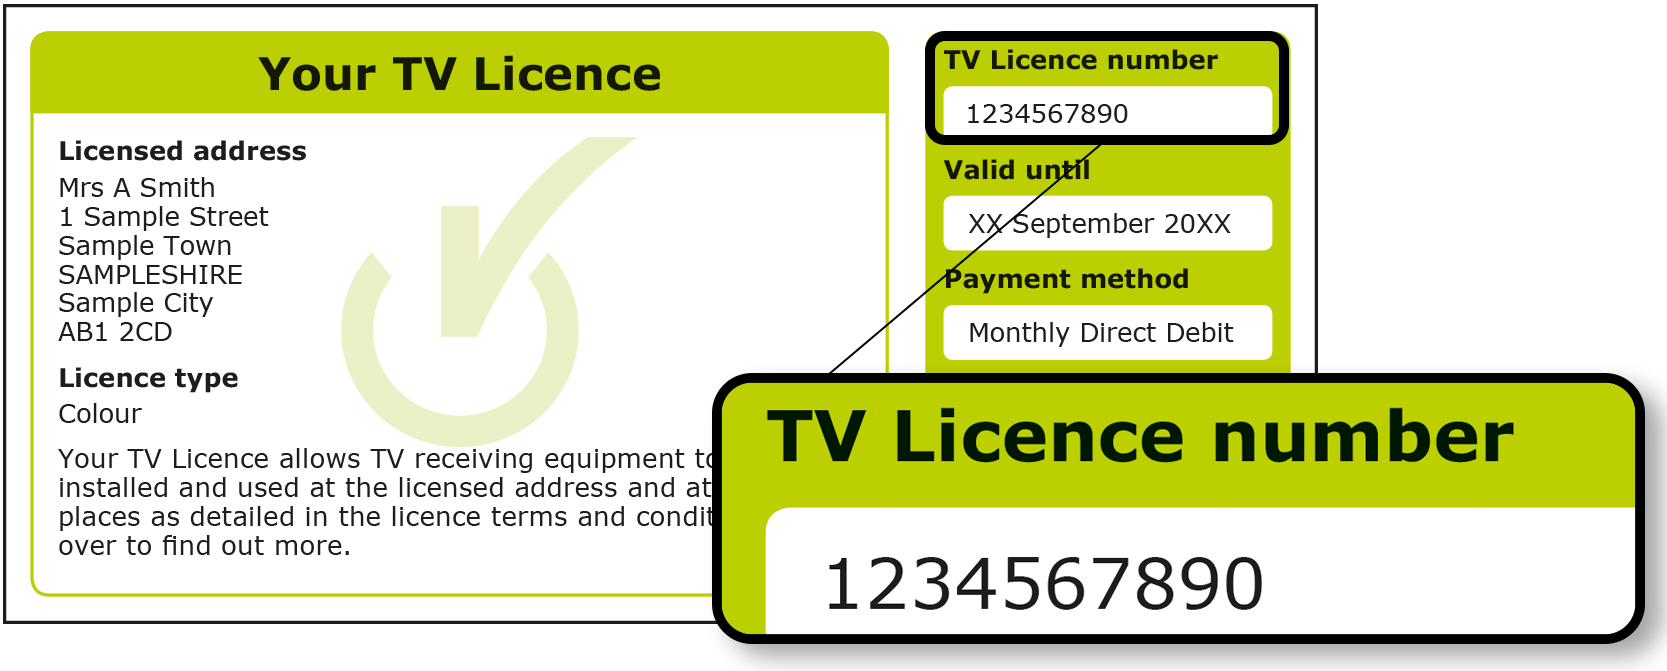 where to find your licence number